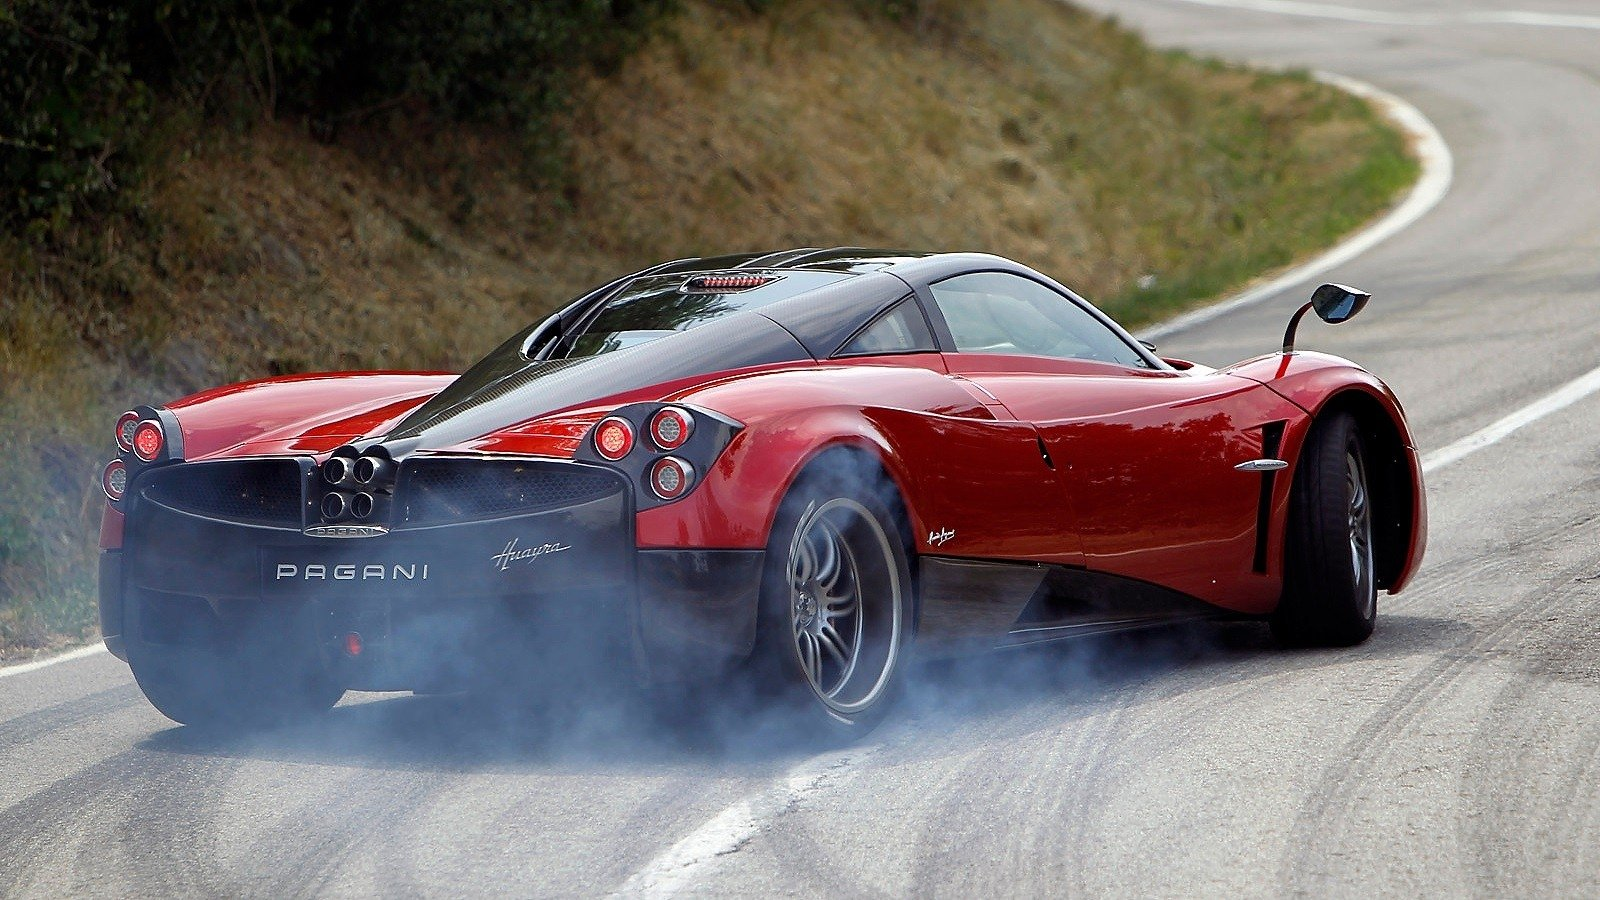 131 Pagani Huayra HD Wallpapers Background Images 1600x900